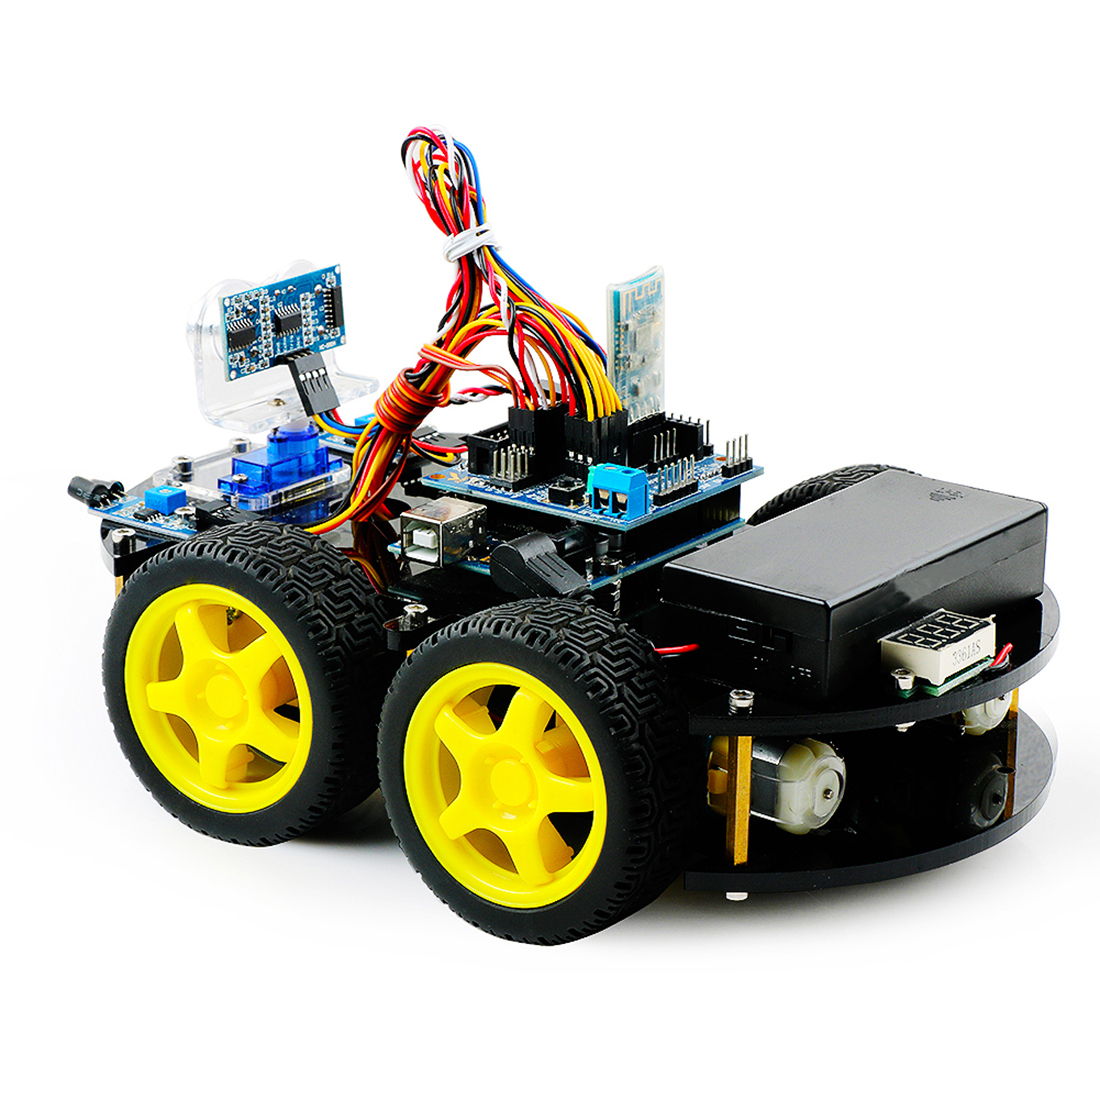 DIY Obstacle Avoidance Smart Programmable Robot Car Educational Learning Kit For Arduino UNO / BLE UNO Programmable Toys Gift